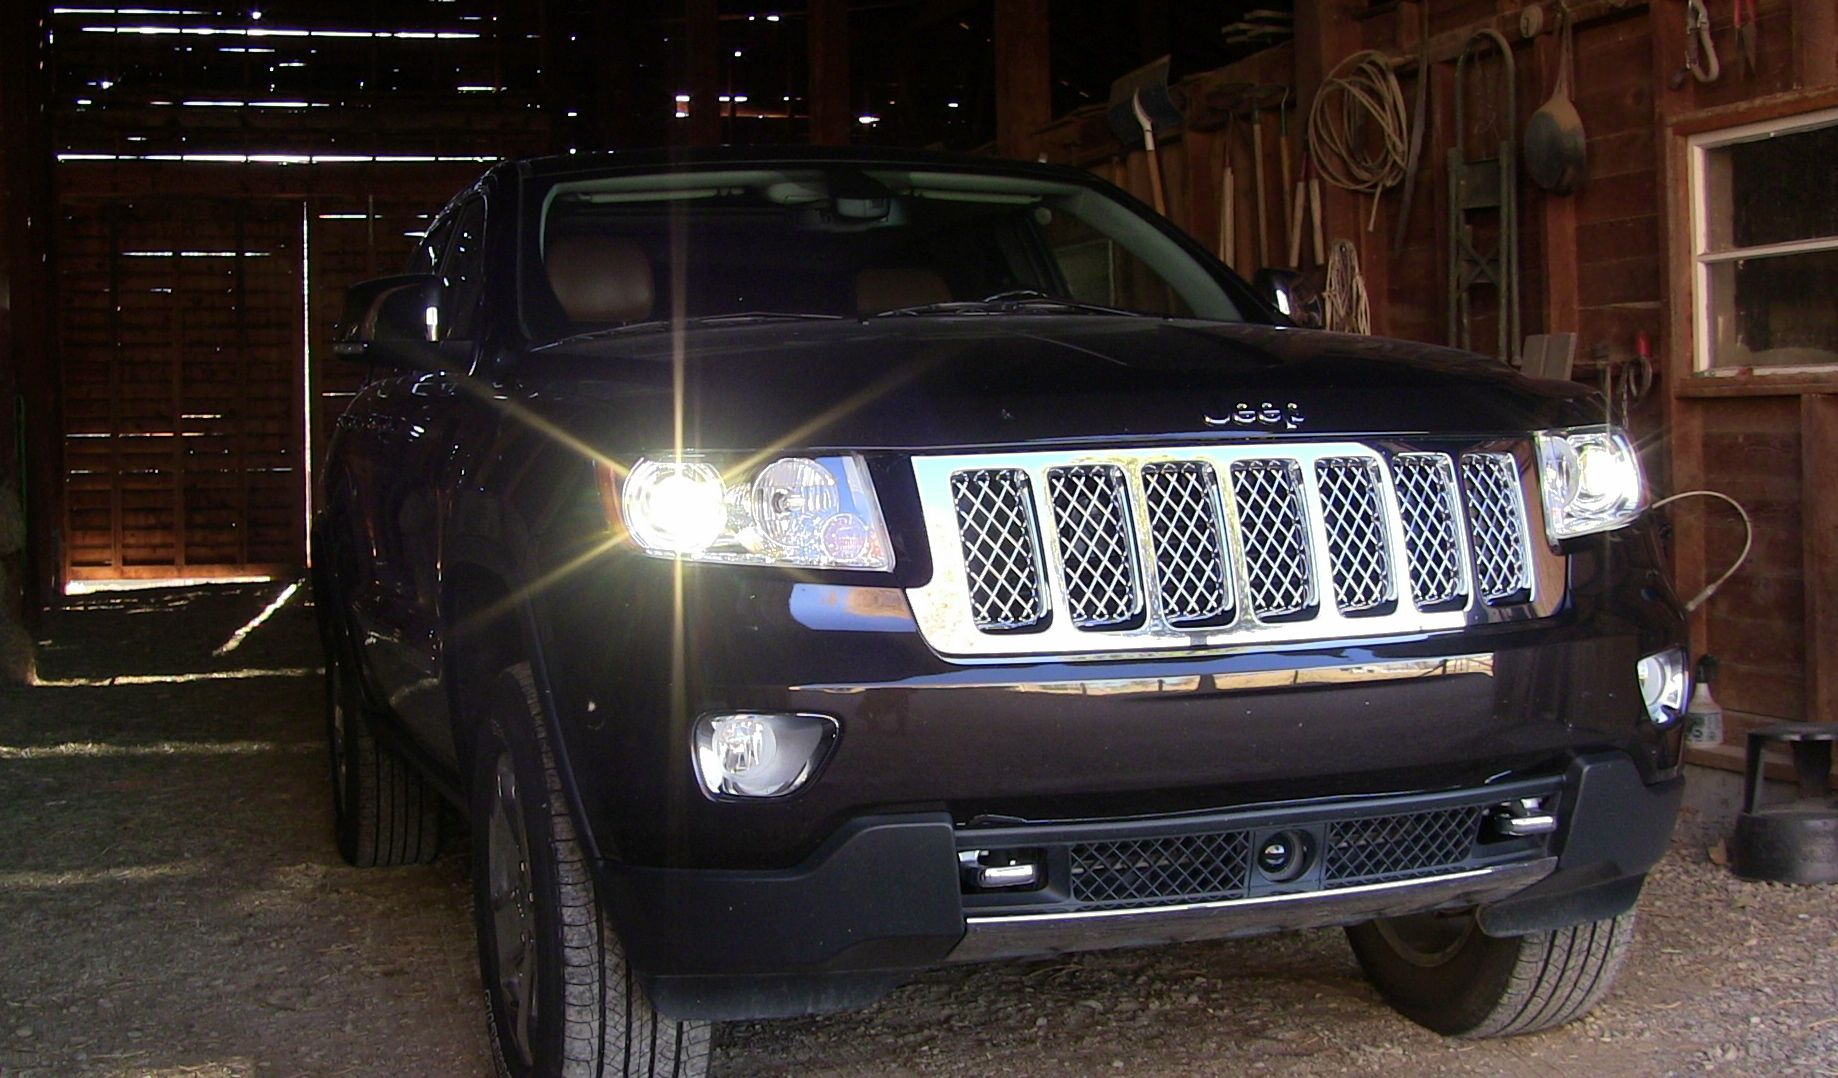 Review: 2012 Jeep Grand Cherokee goes on Holiday Road Trip ...